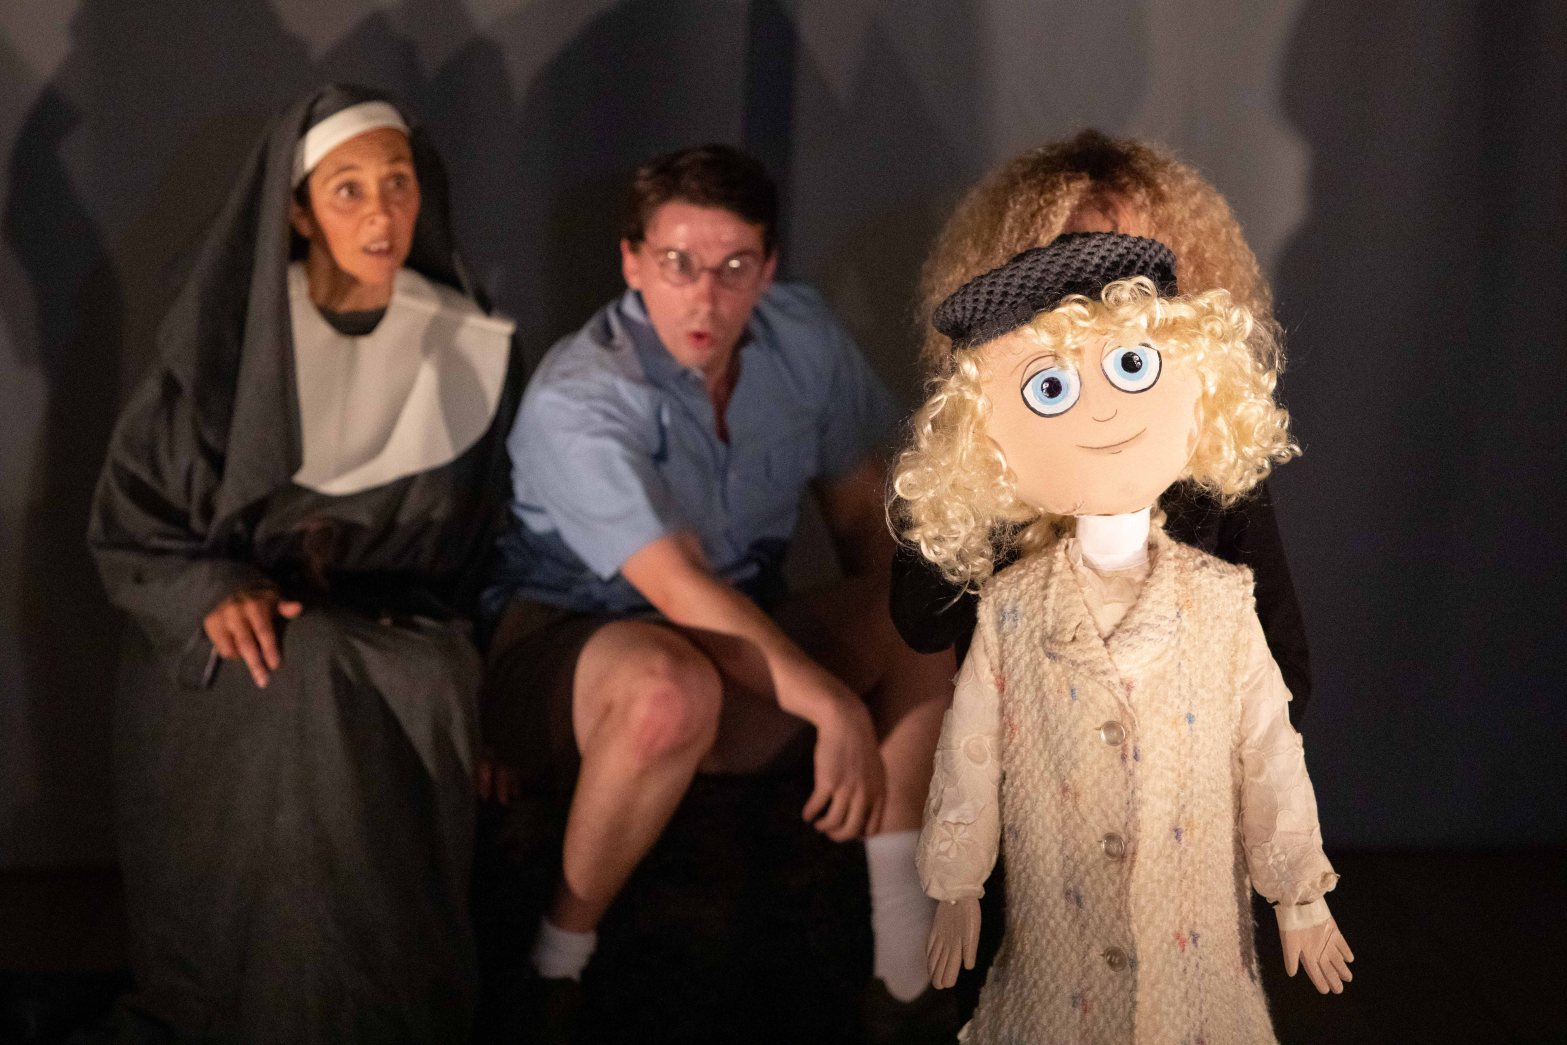 A puppet of a little girl looks ahead while behind a quizical nun and schoolboy look on.